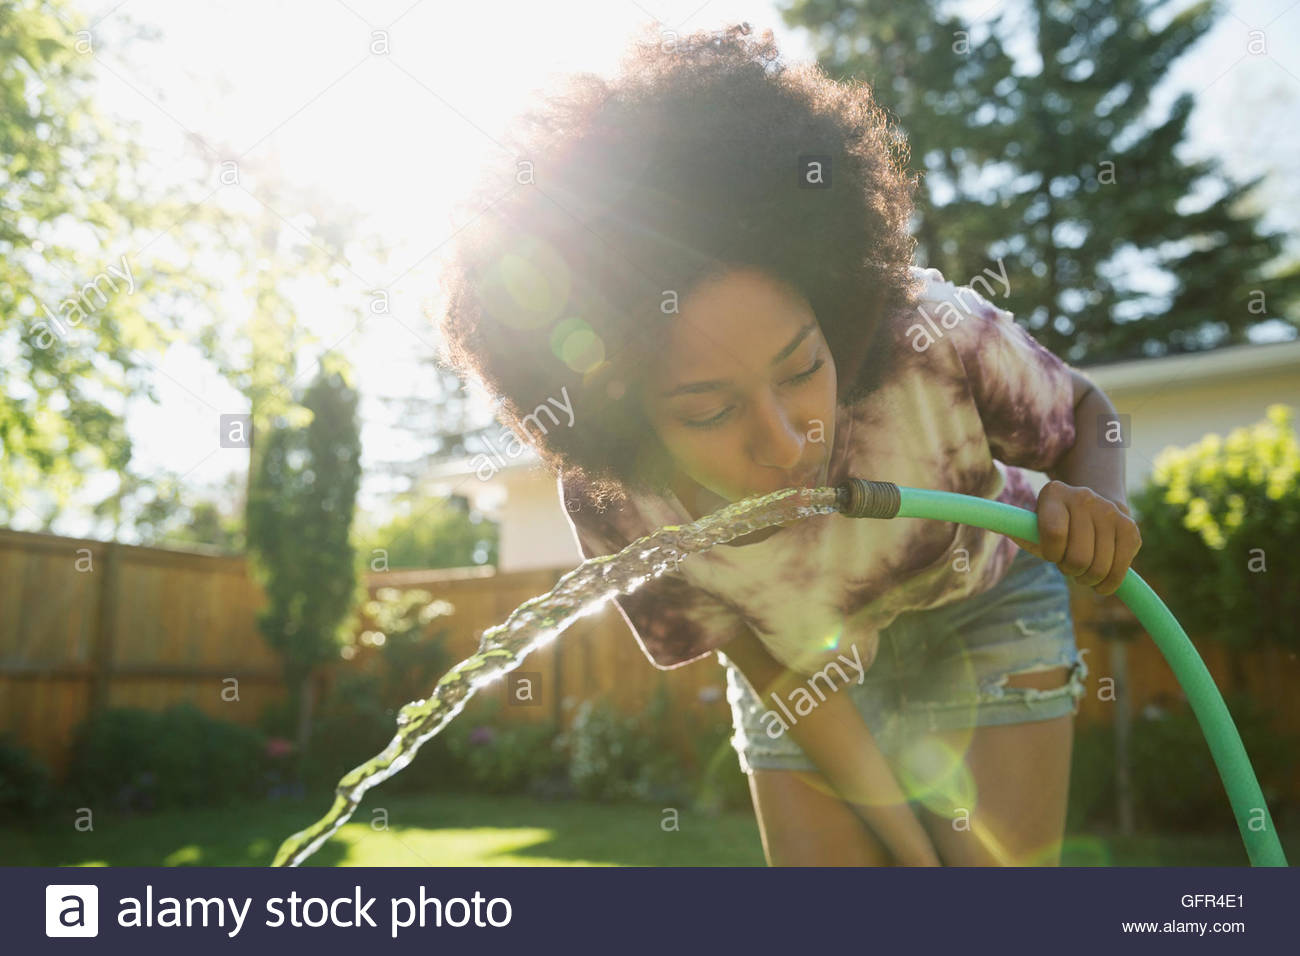 woman drinking water from hose in sunny backyard stock photo